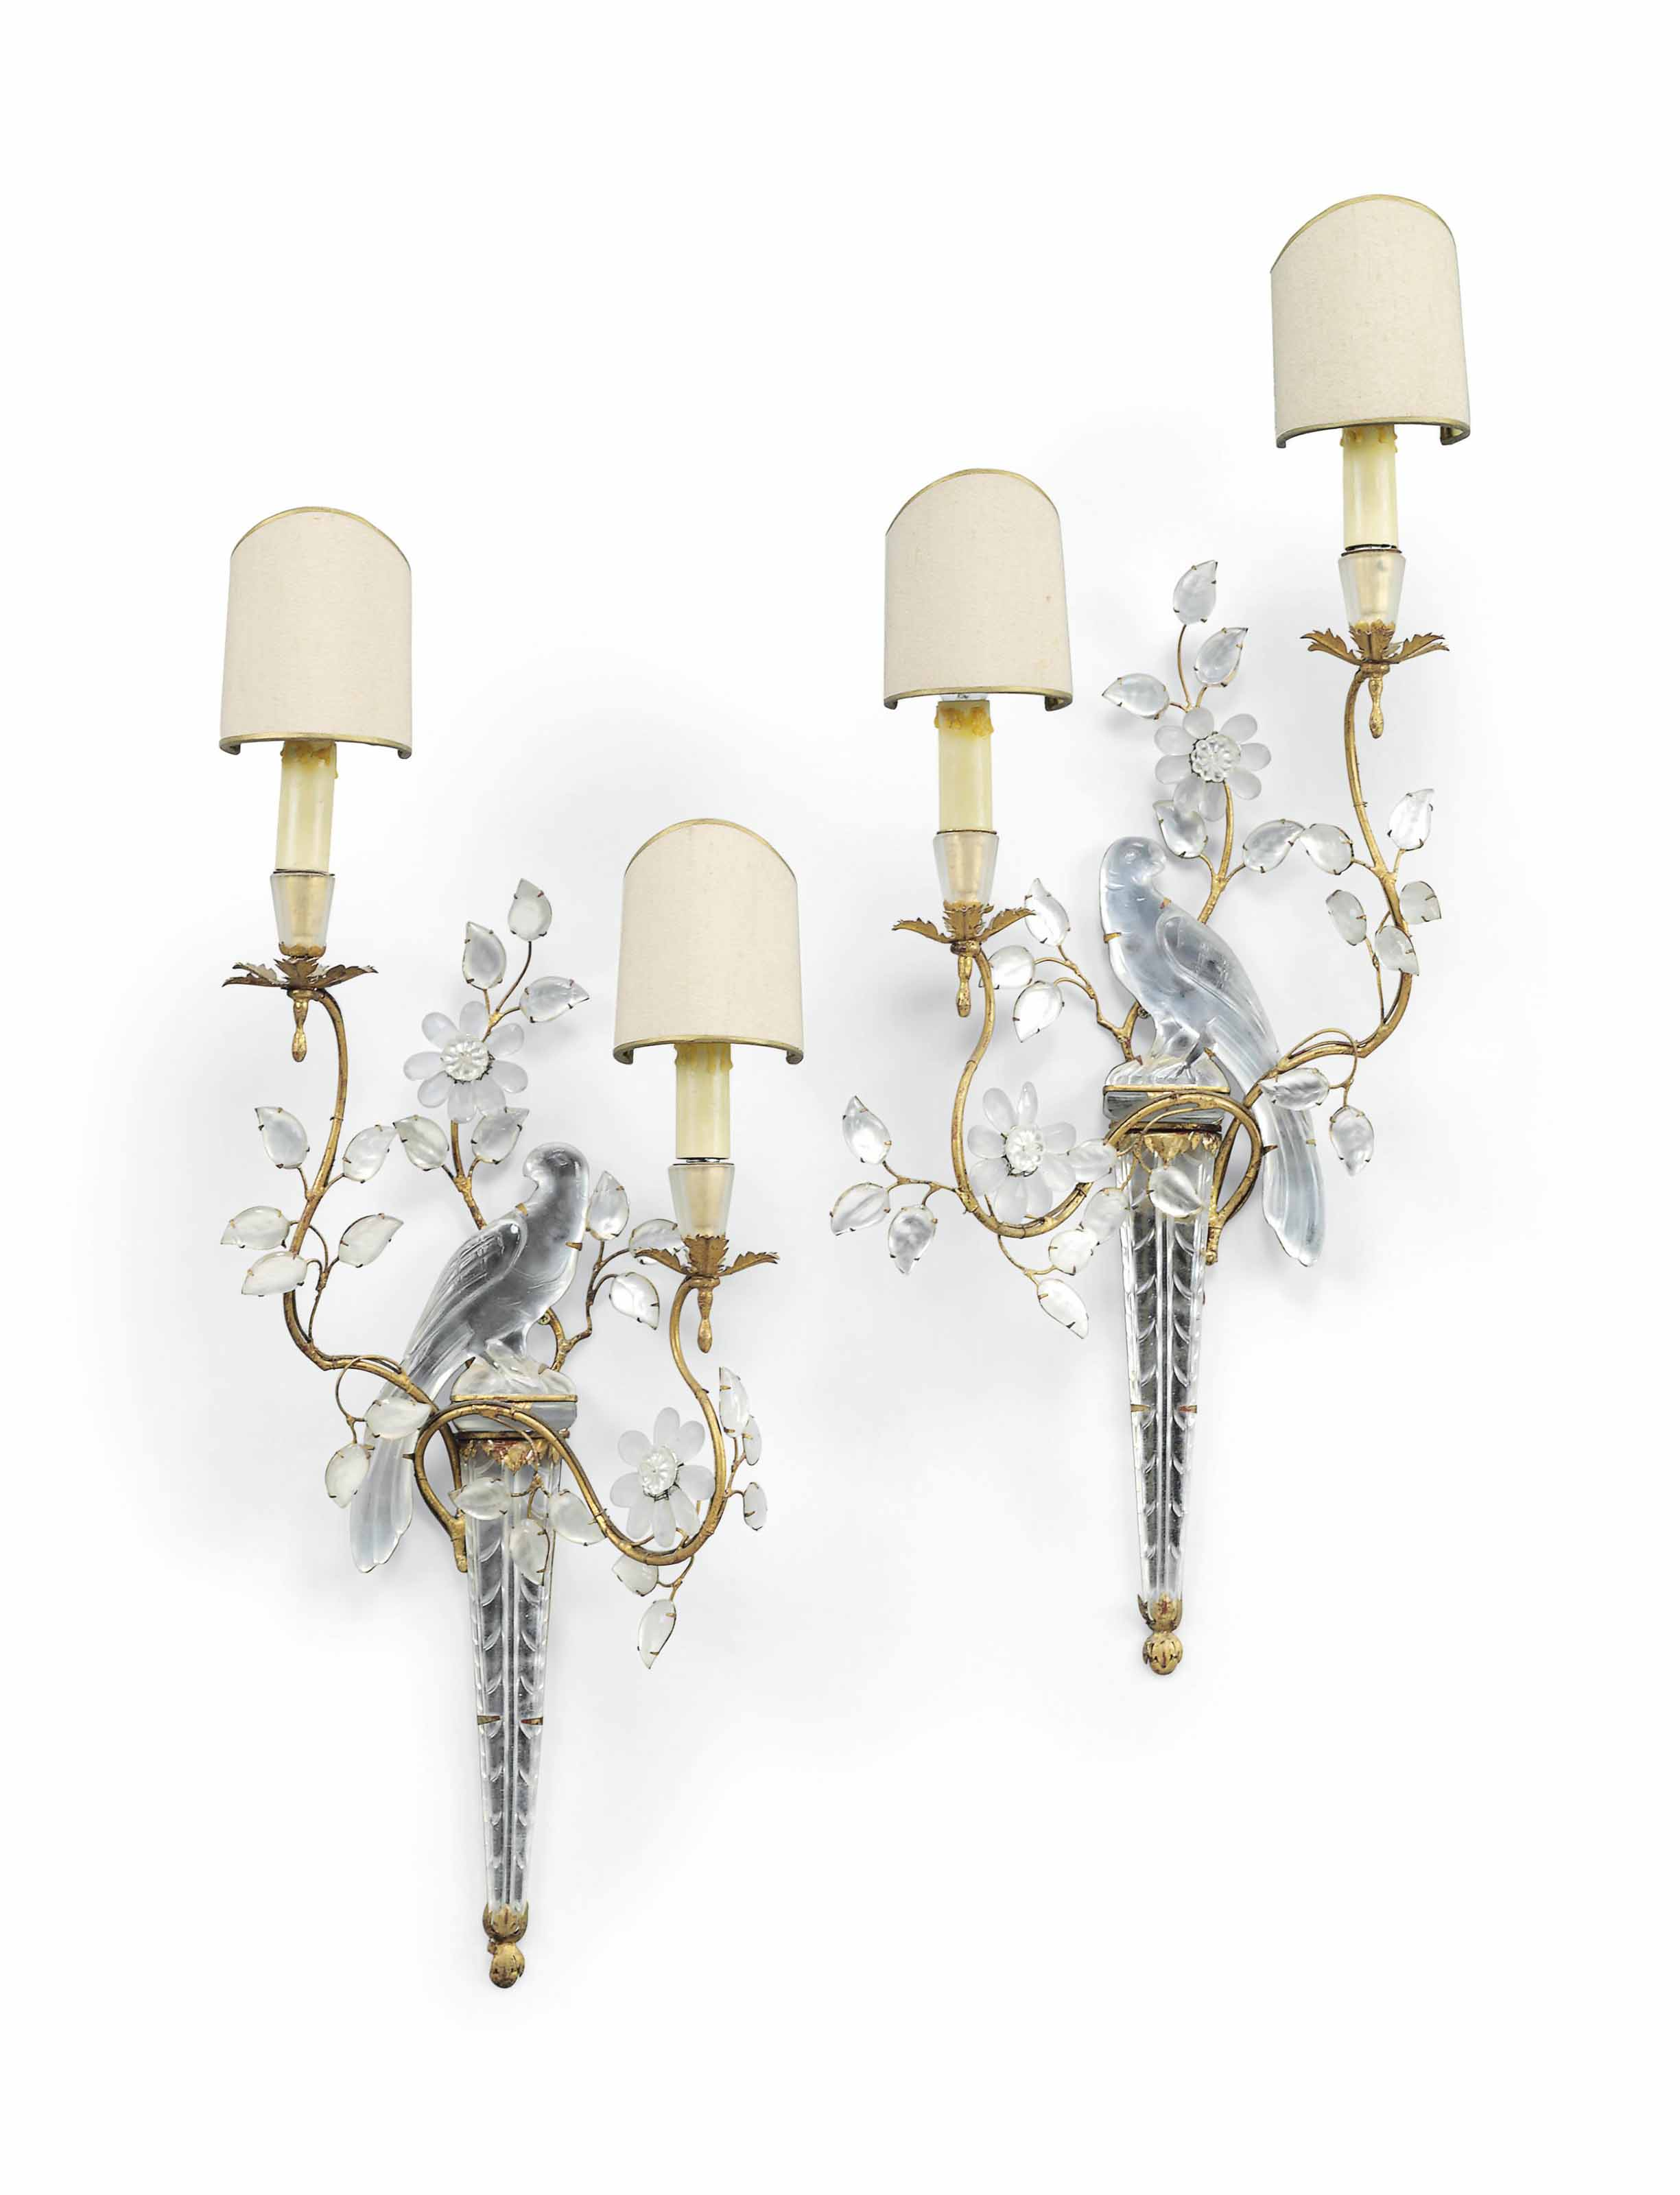 A PAIR OF FRENCH MOULDED AND CUT-GLASS AND GILT-METAL TWIN-BRANCH WALL-LIGHTS